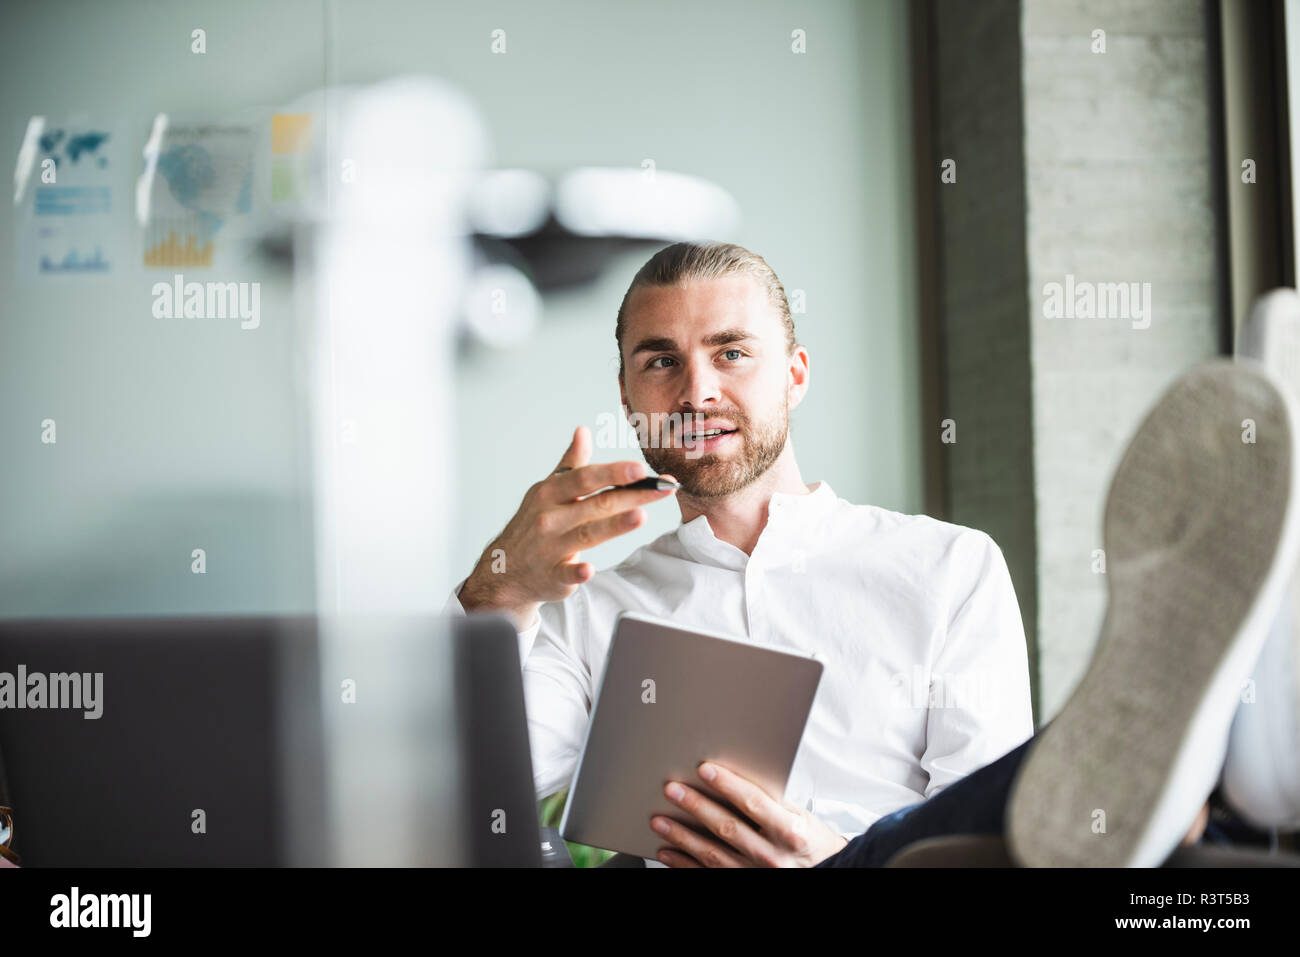 Young businessman sitting in office with feet up holding tablet and talking - Stock Image